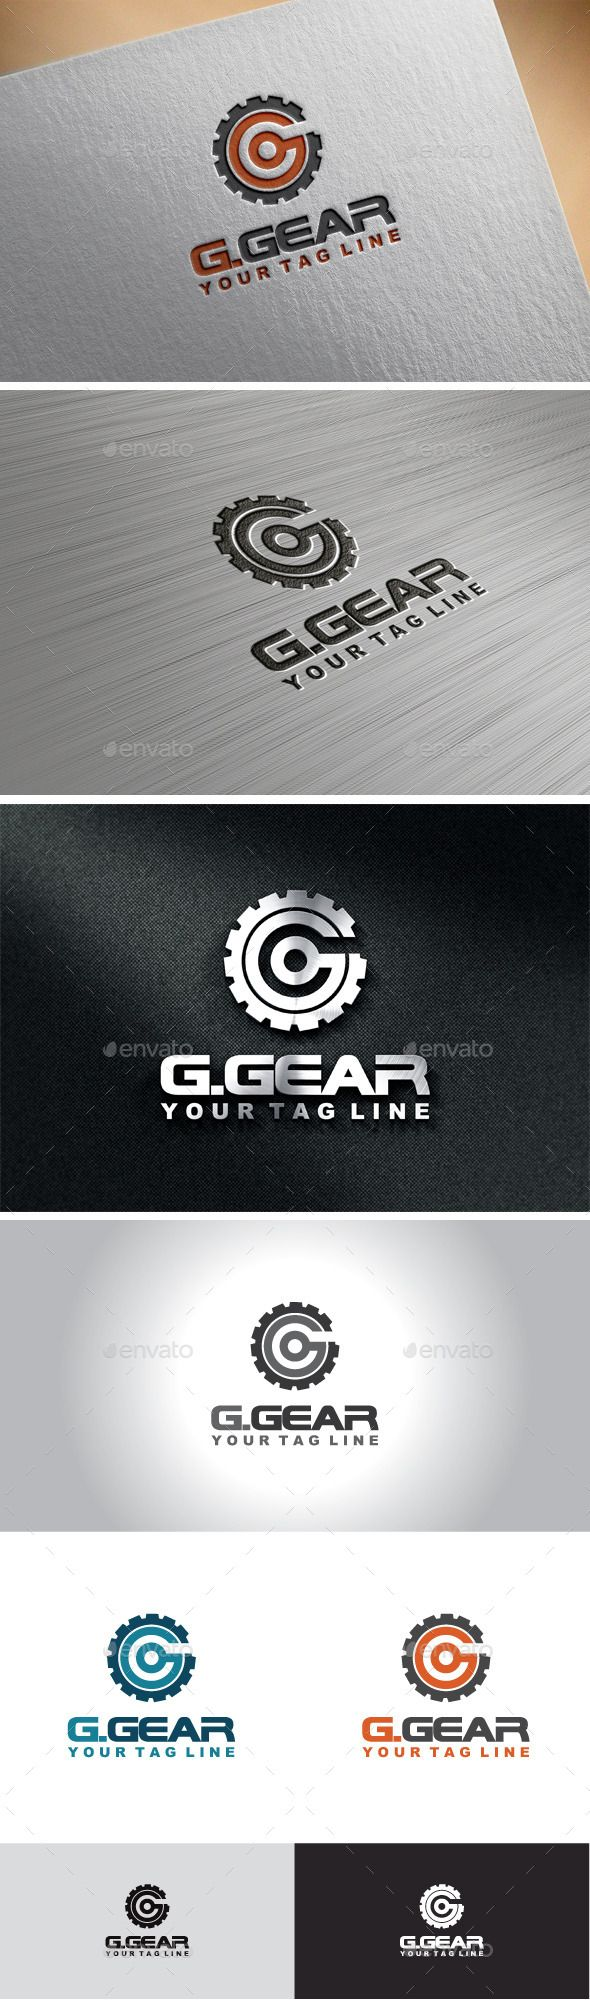 Gear Letter G Logo — AI Illustrator #gaming #modern mobile logo • Available here → https://graphicriver.net/item/gear-letter-g-logo/10111136?ref=pxcr